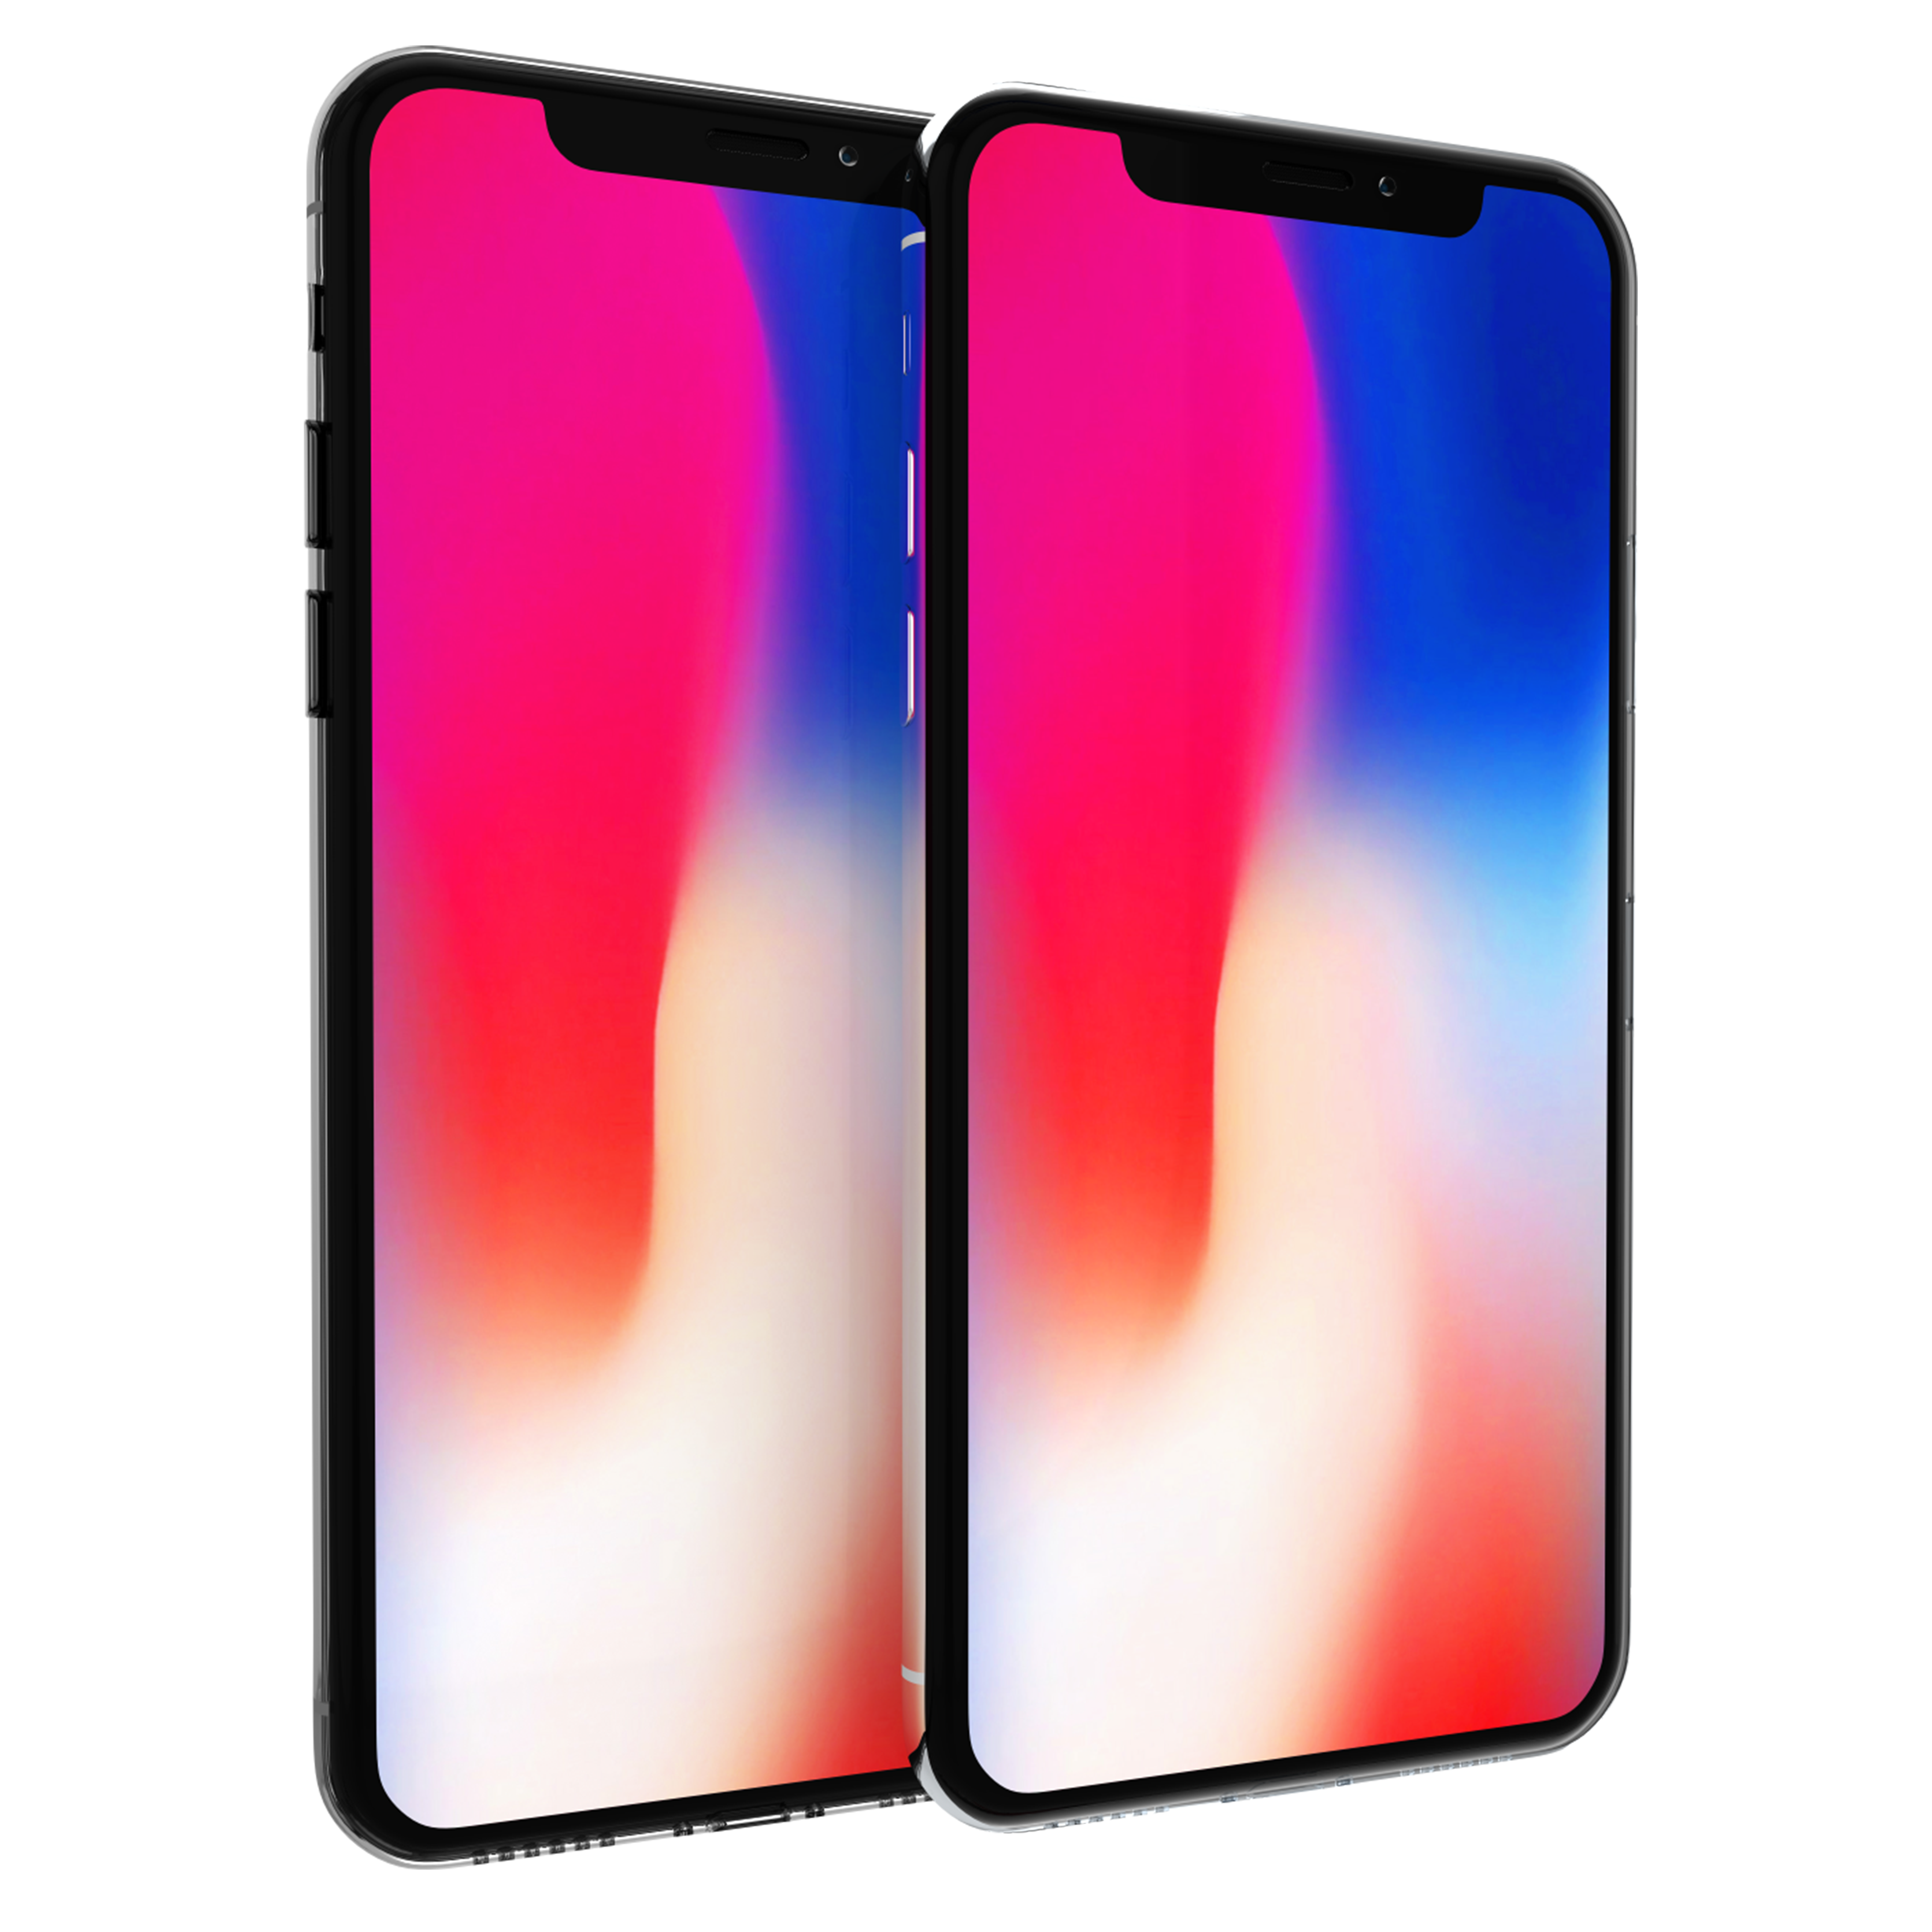 Apple Iphone X Png Image First Iphone Iphone Apple Iphone